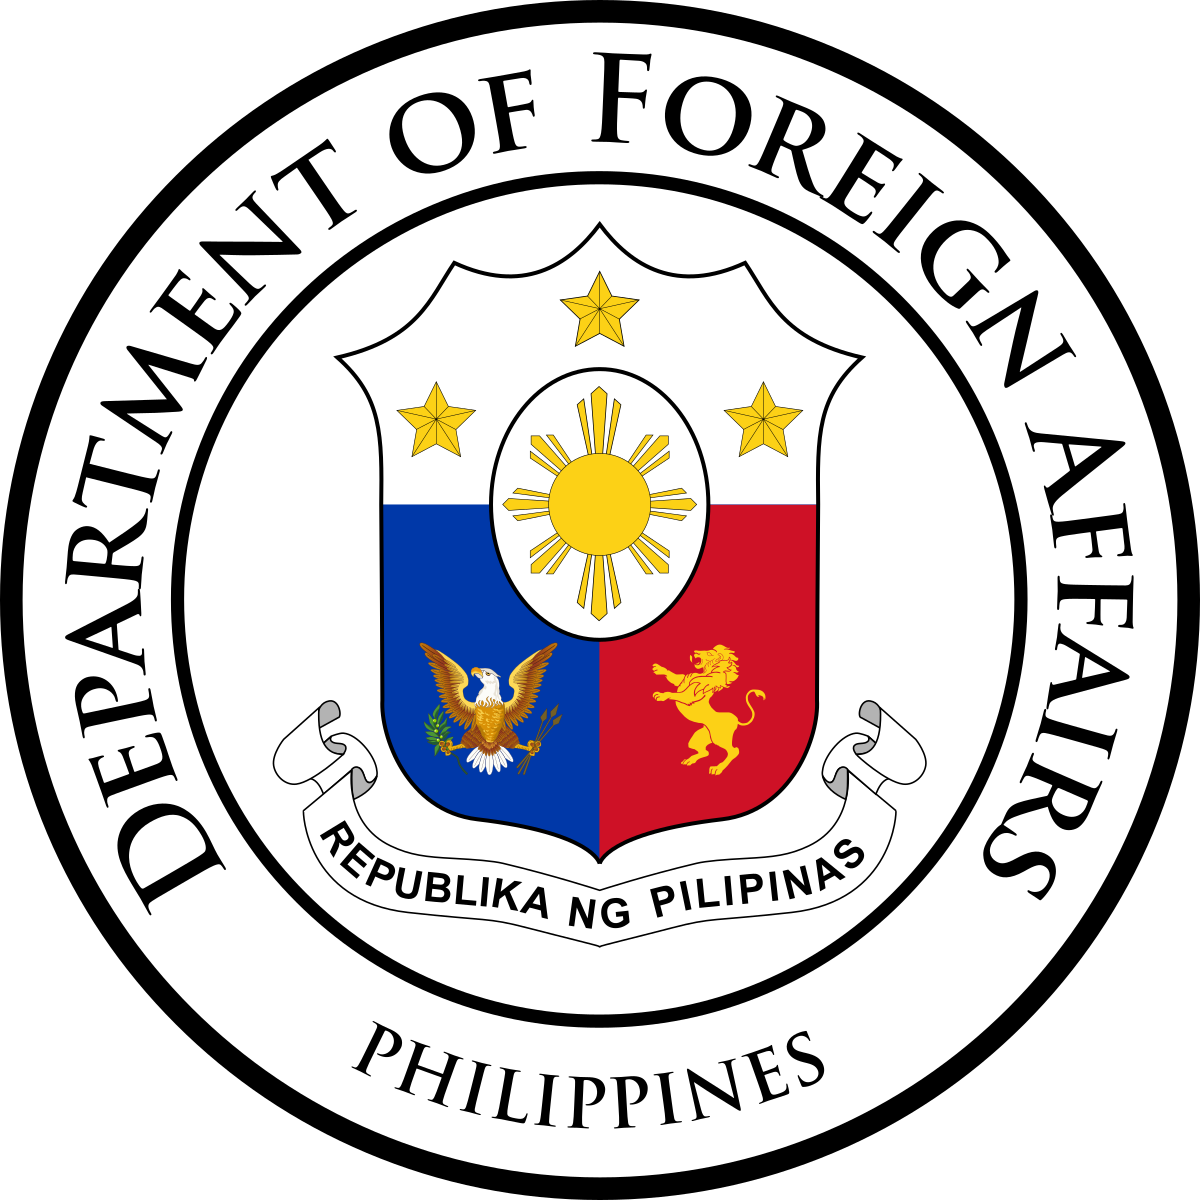 Filipino drawing bansa. Department of foreign affairs